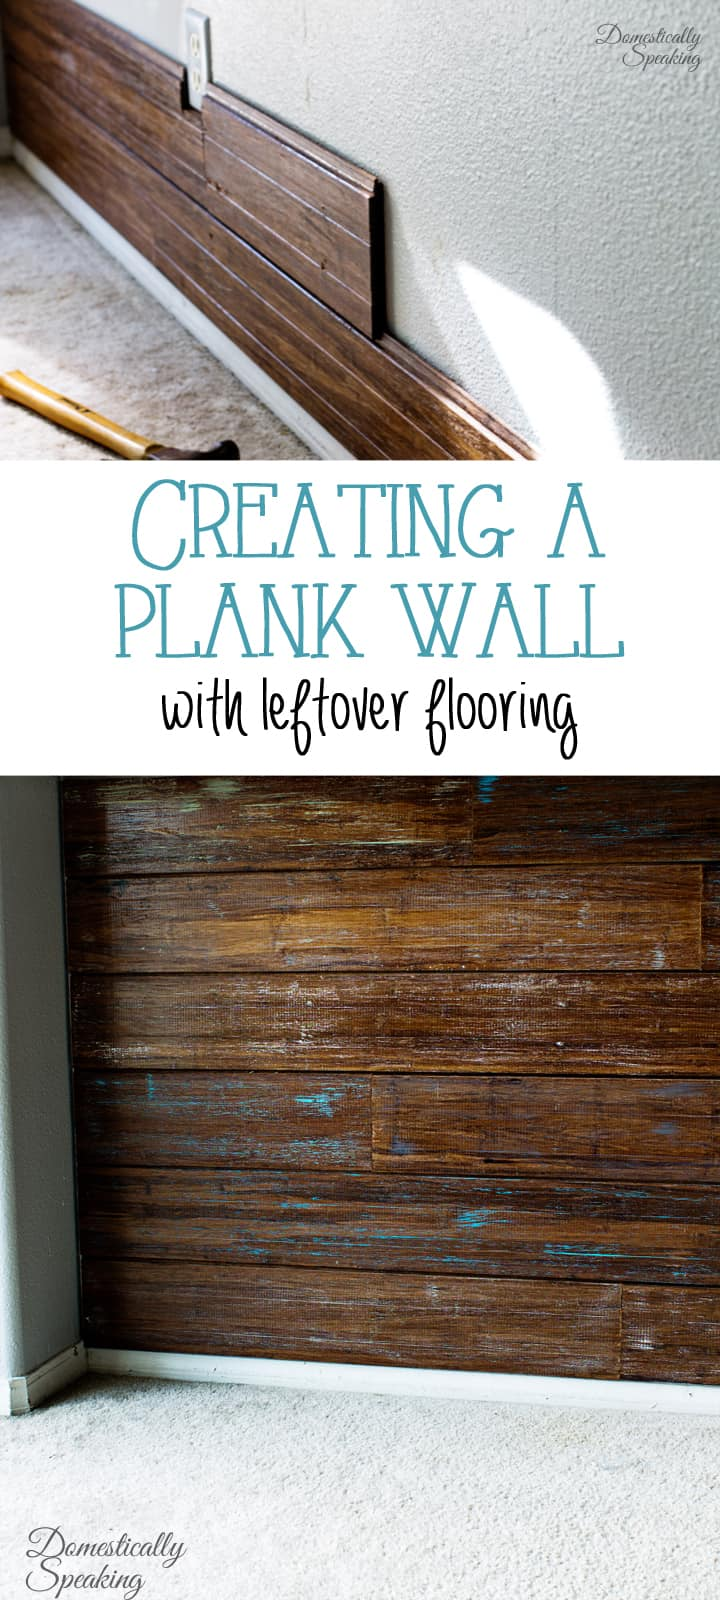 Creating a Plank Wall with Leftover Flooring